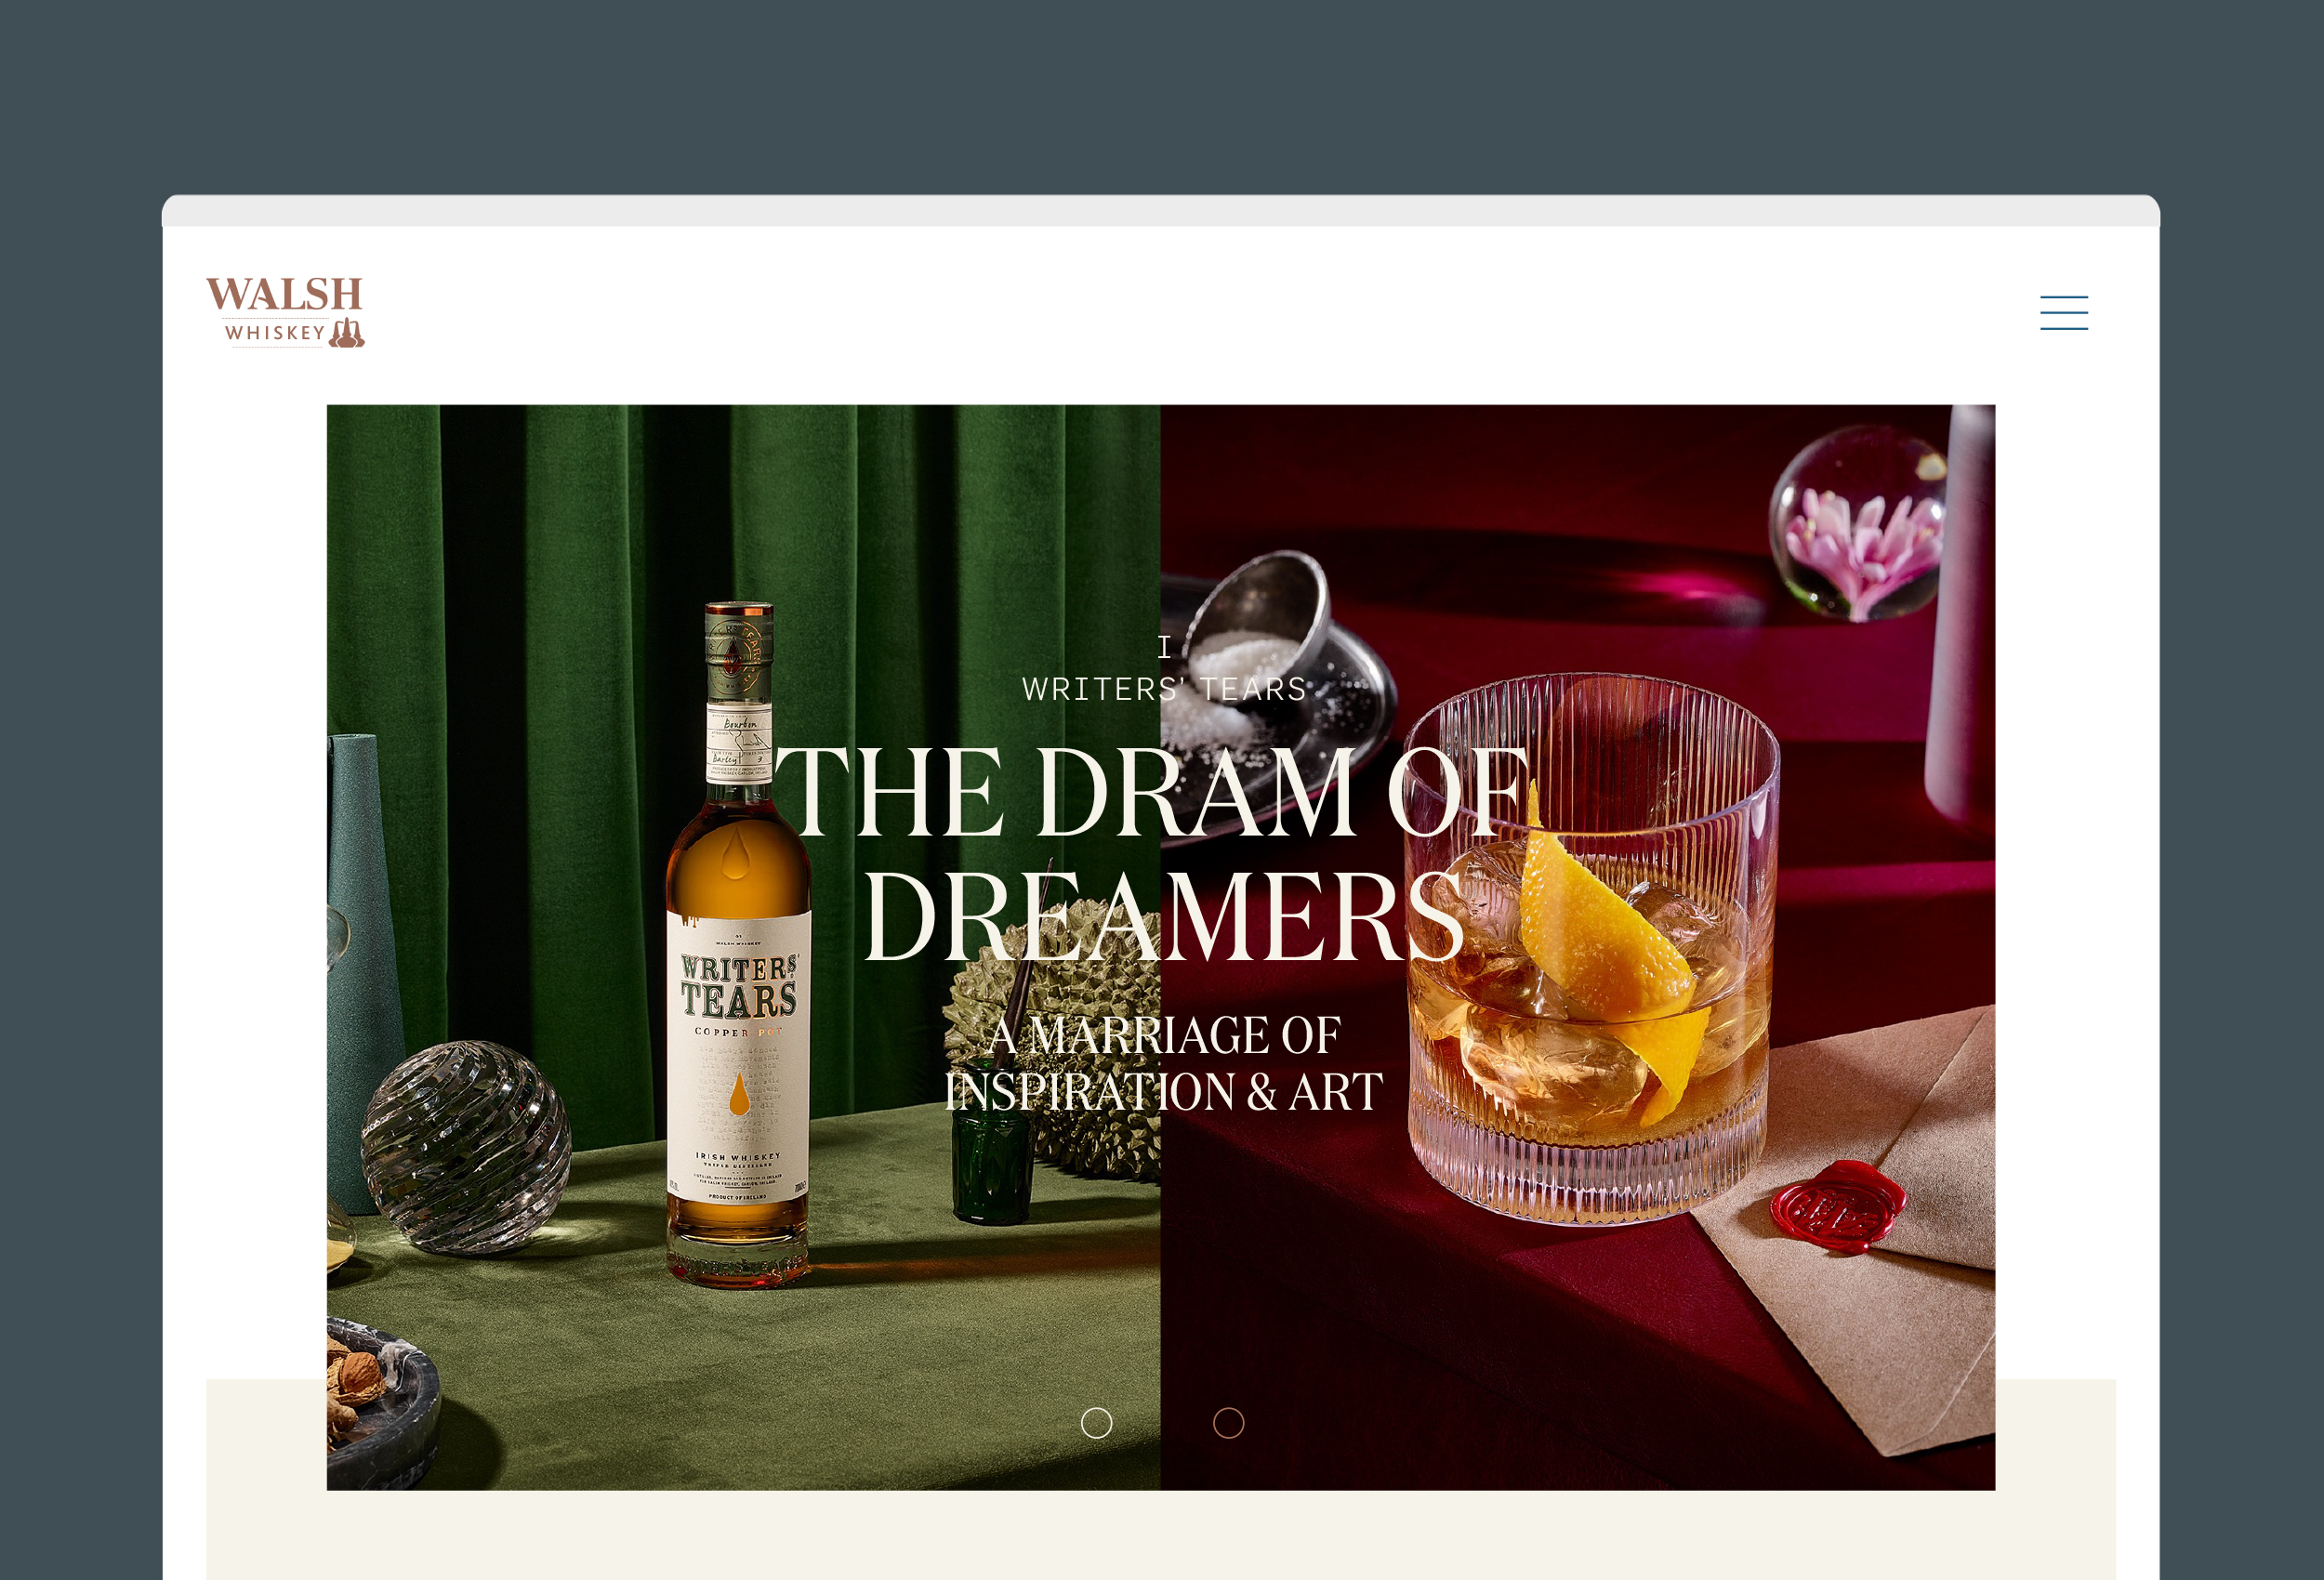 Cover image: Walsh Whiskey Website